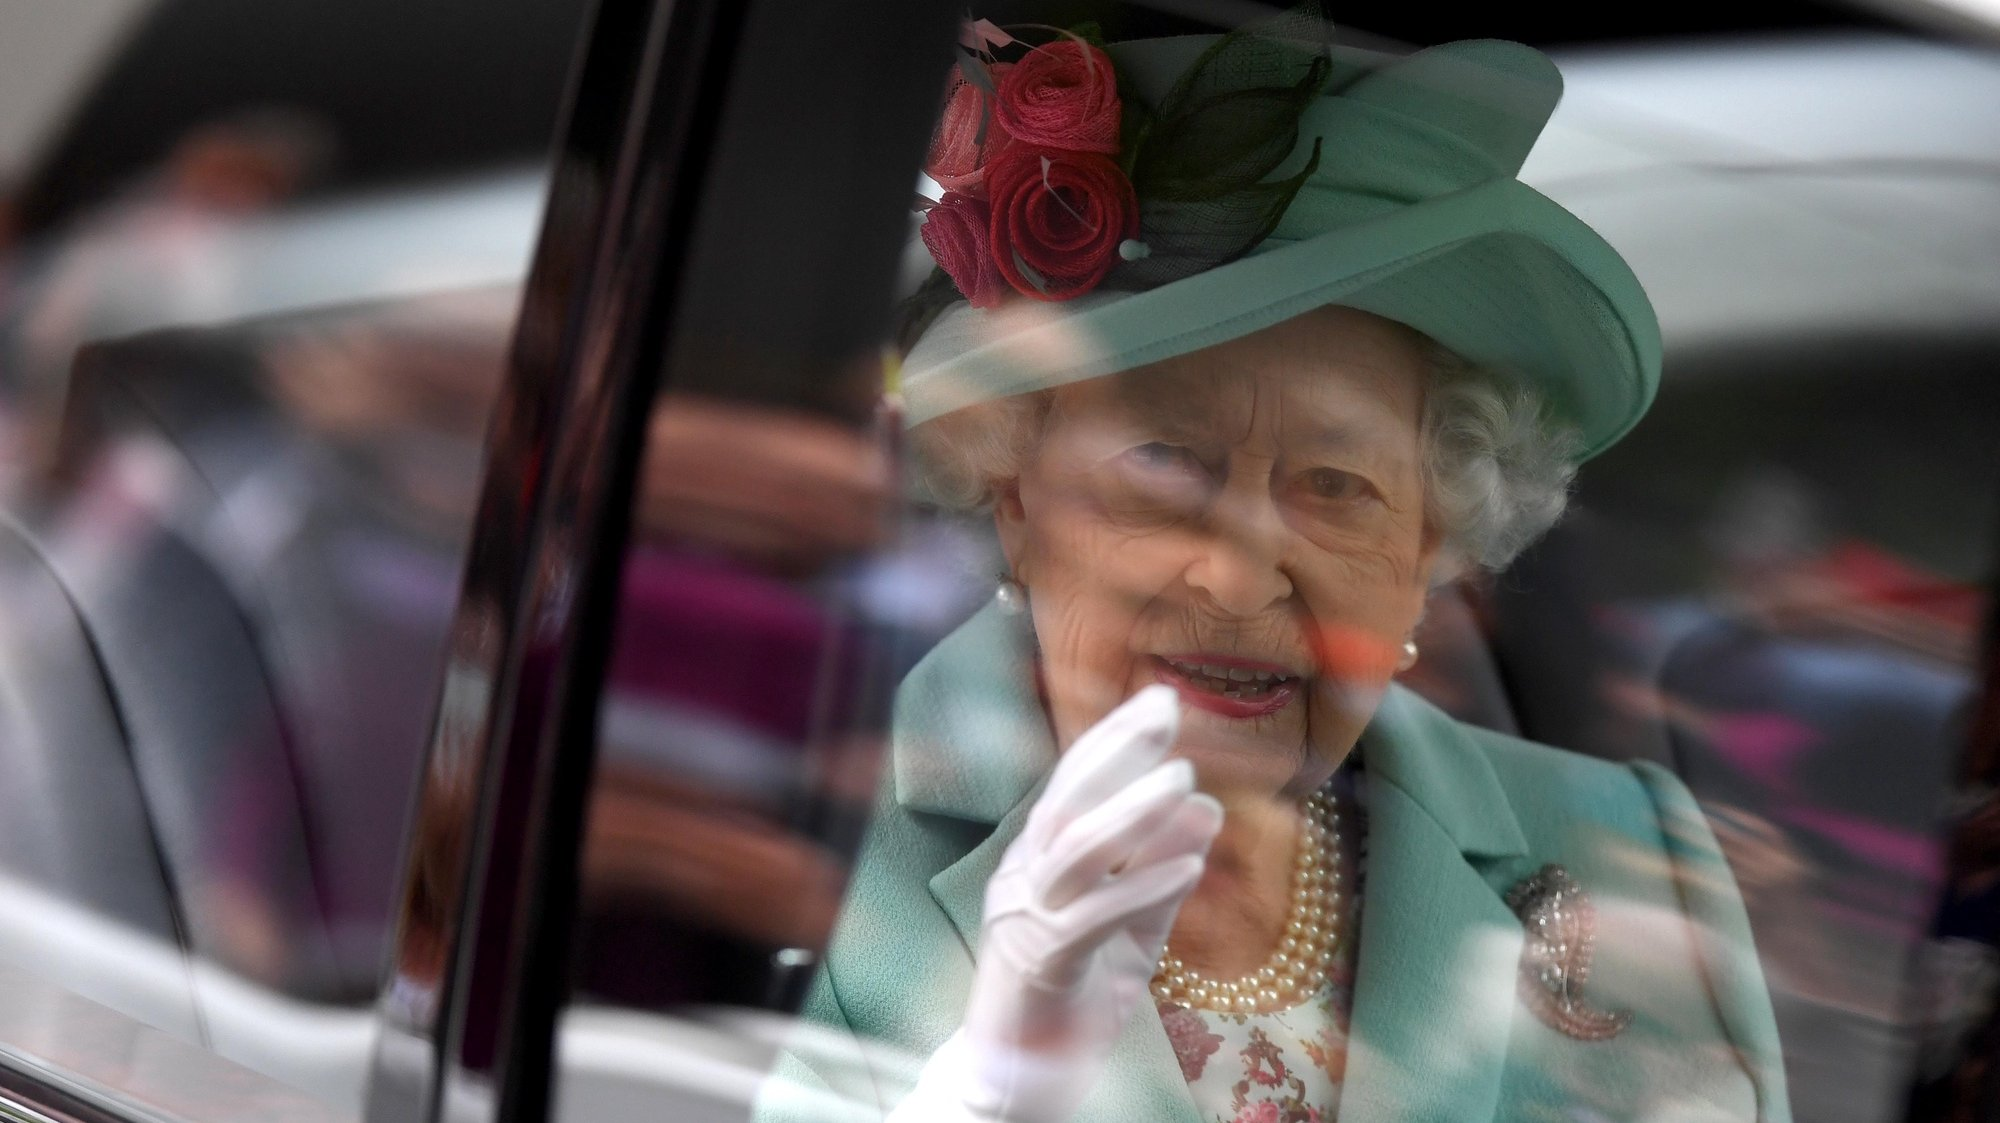 epa09285566 Britain's Queen Elizabeth II arrives to attend day five of Royal Ascot, in Ascot, Britain, 19 June 2021. Royal Ascot is Britain's most valuable horse race meeting and social event running daily from 15 to 19 June 2021.  EPA/NEIL HALL